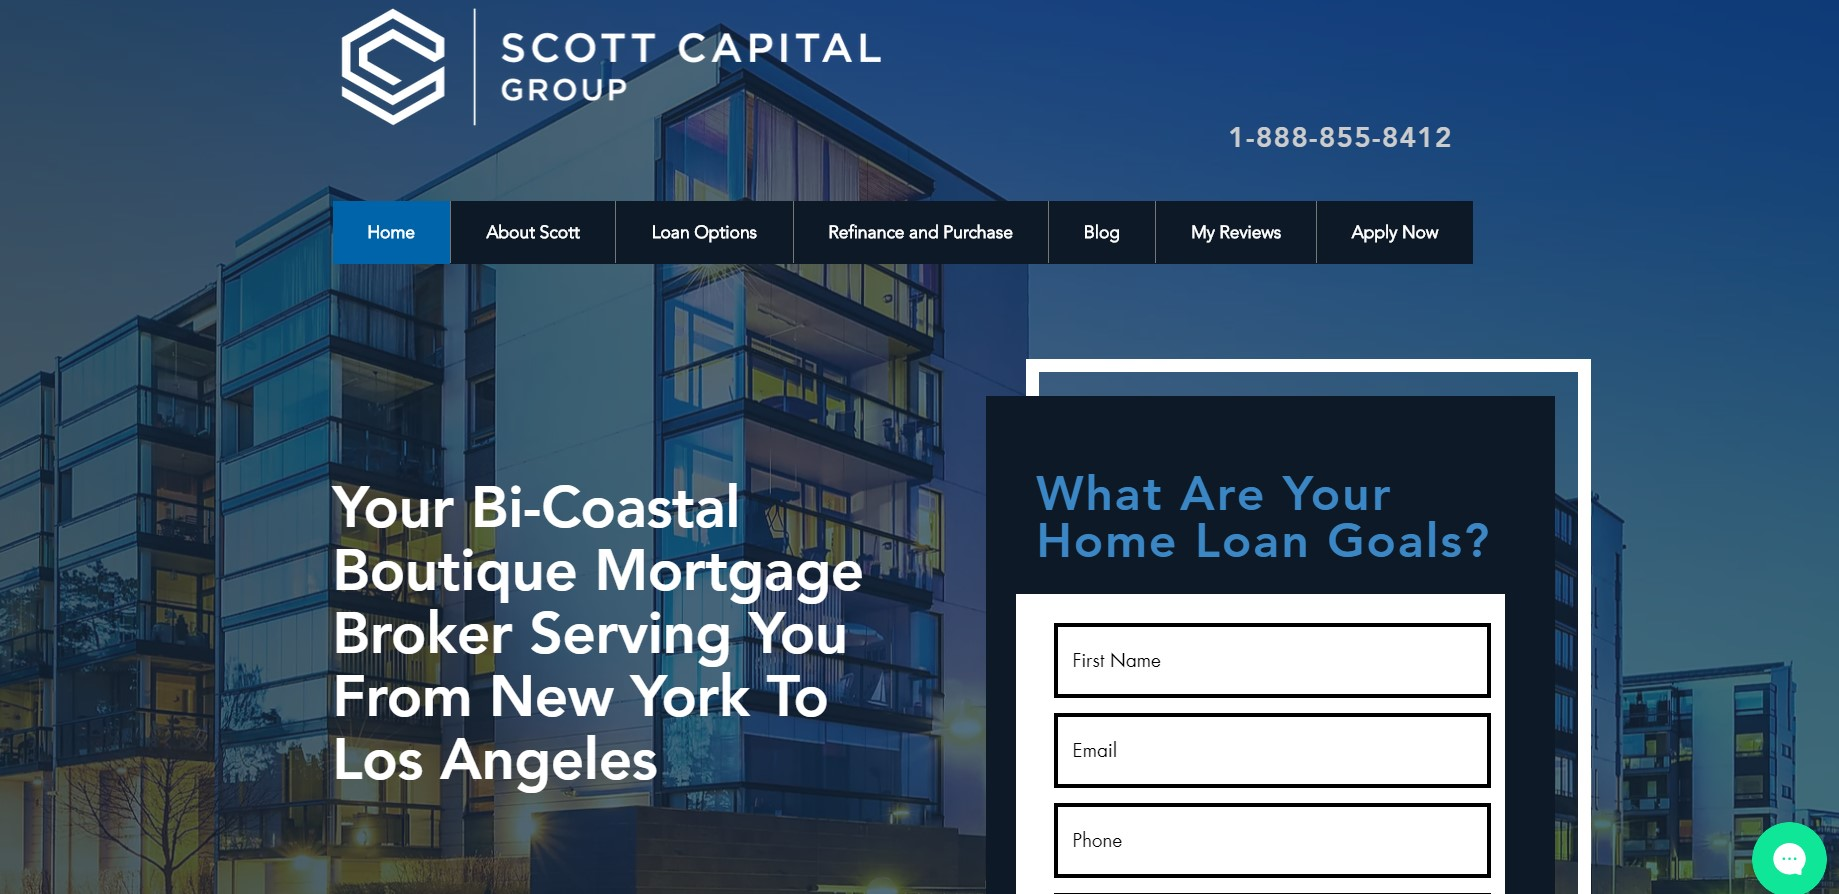 scott group mortgage broker in new york